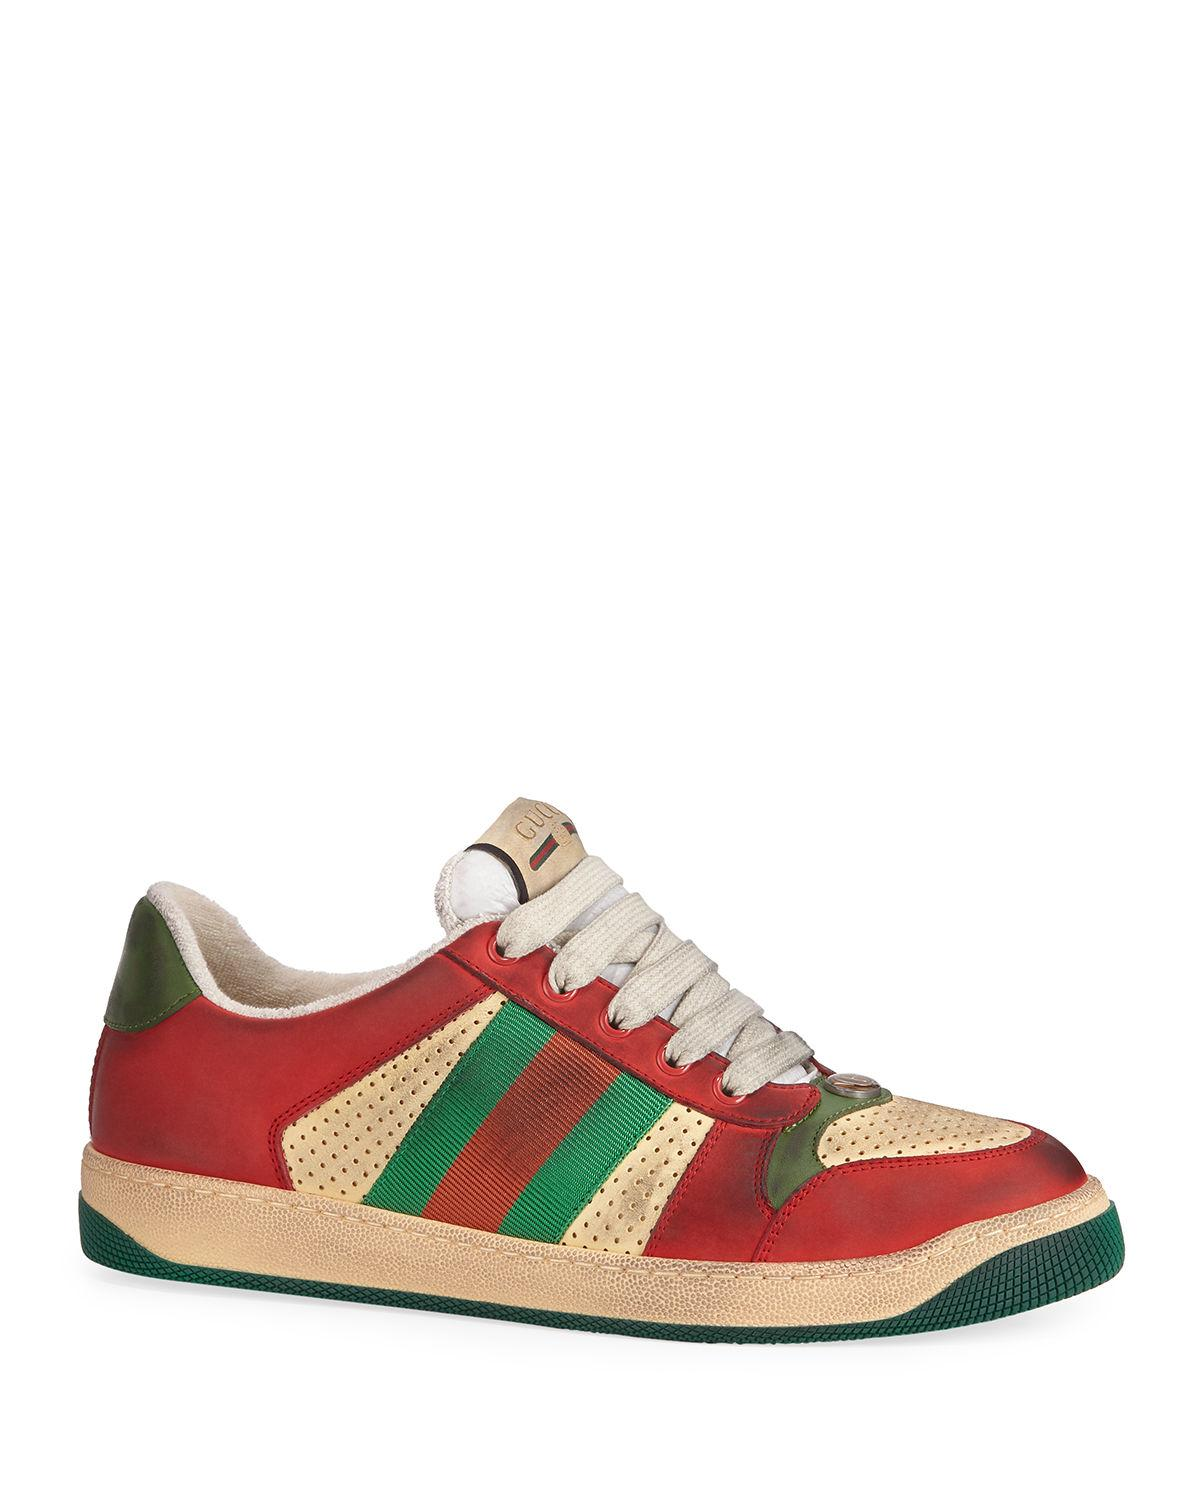 774c09261e3 Lyst - Gucci Men s Distressed Leather Sneakers in Red for Men